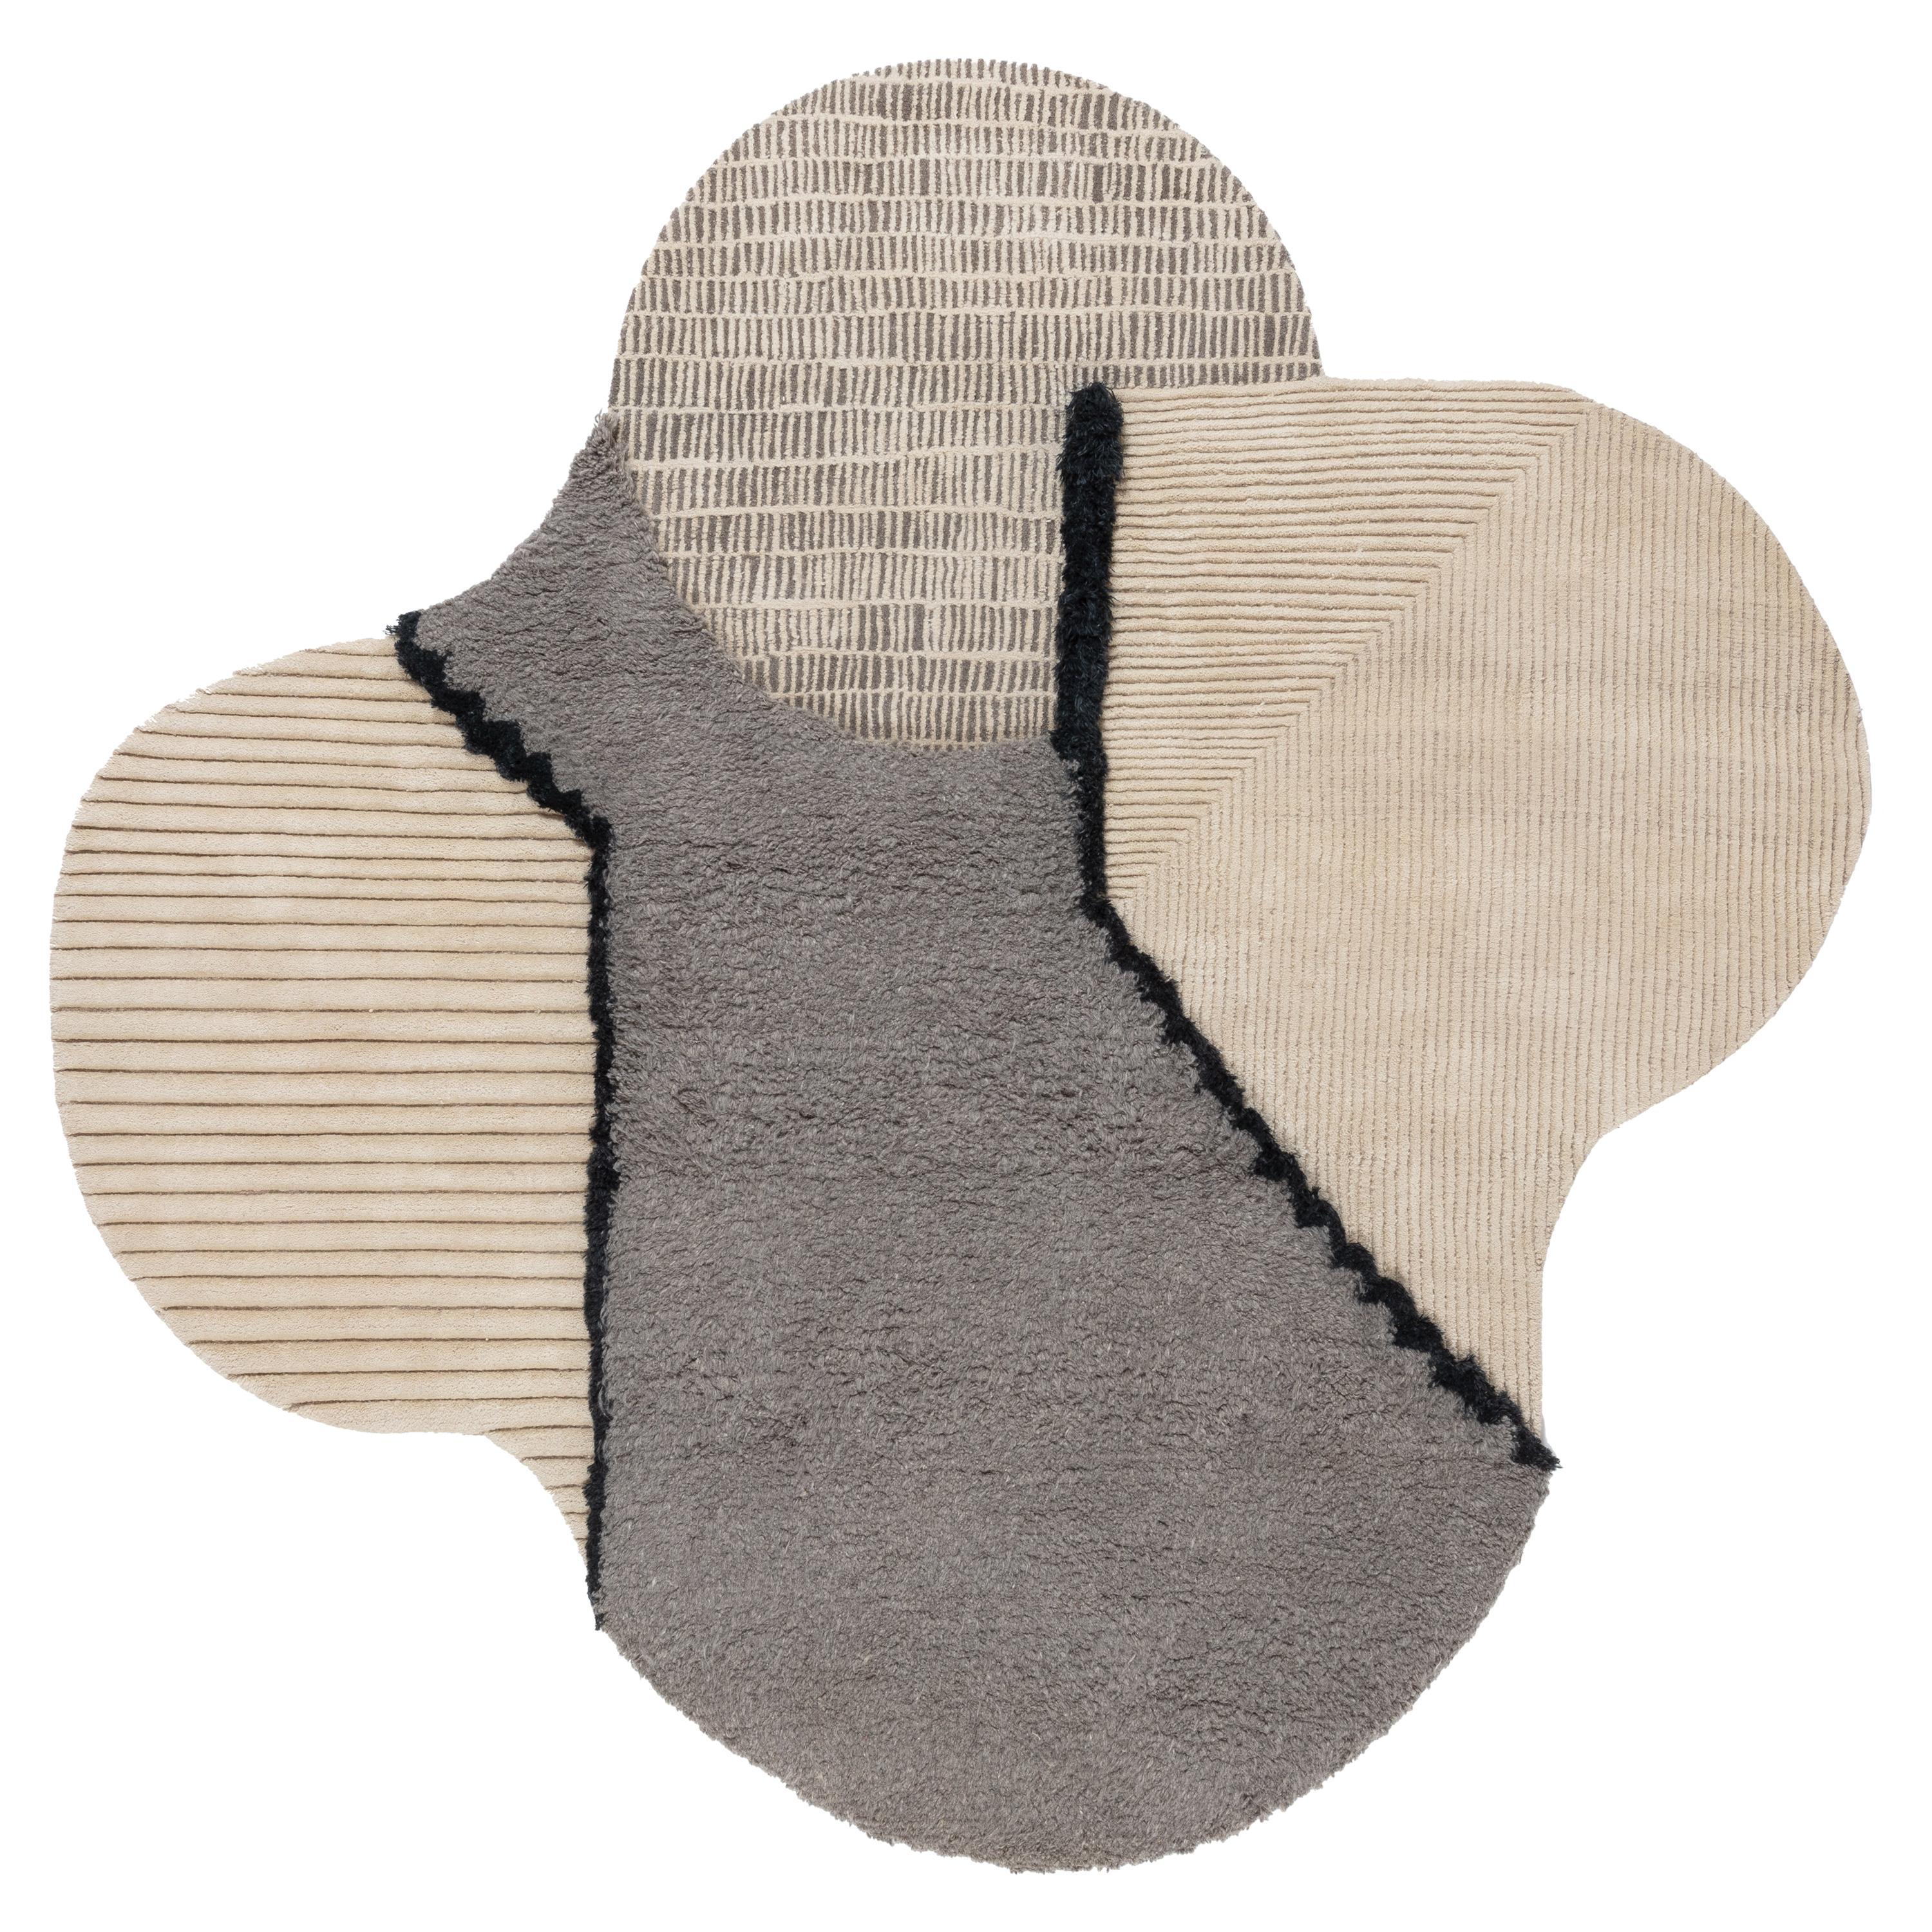 CC-Tapis Lunar Addiction Square Undyed Rug by Studiopepe